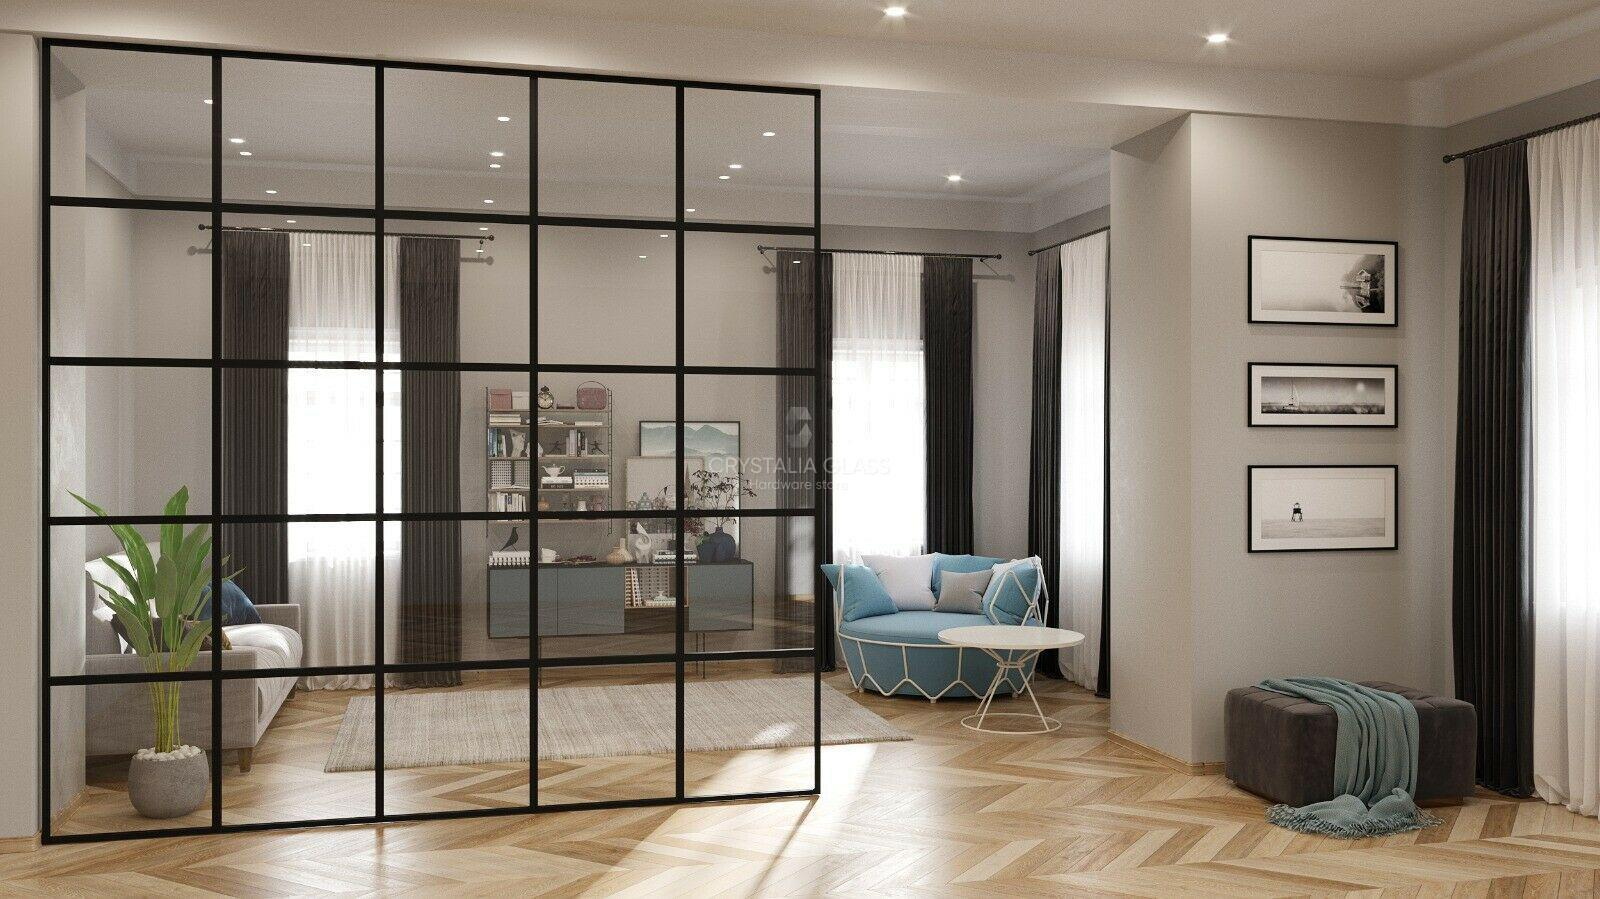 Steel Partition, Room Divider 10' x 10'